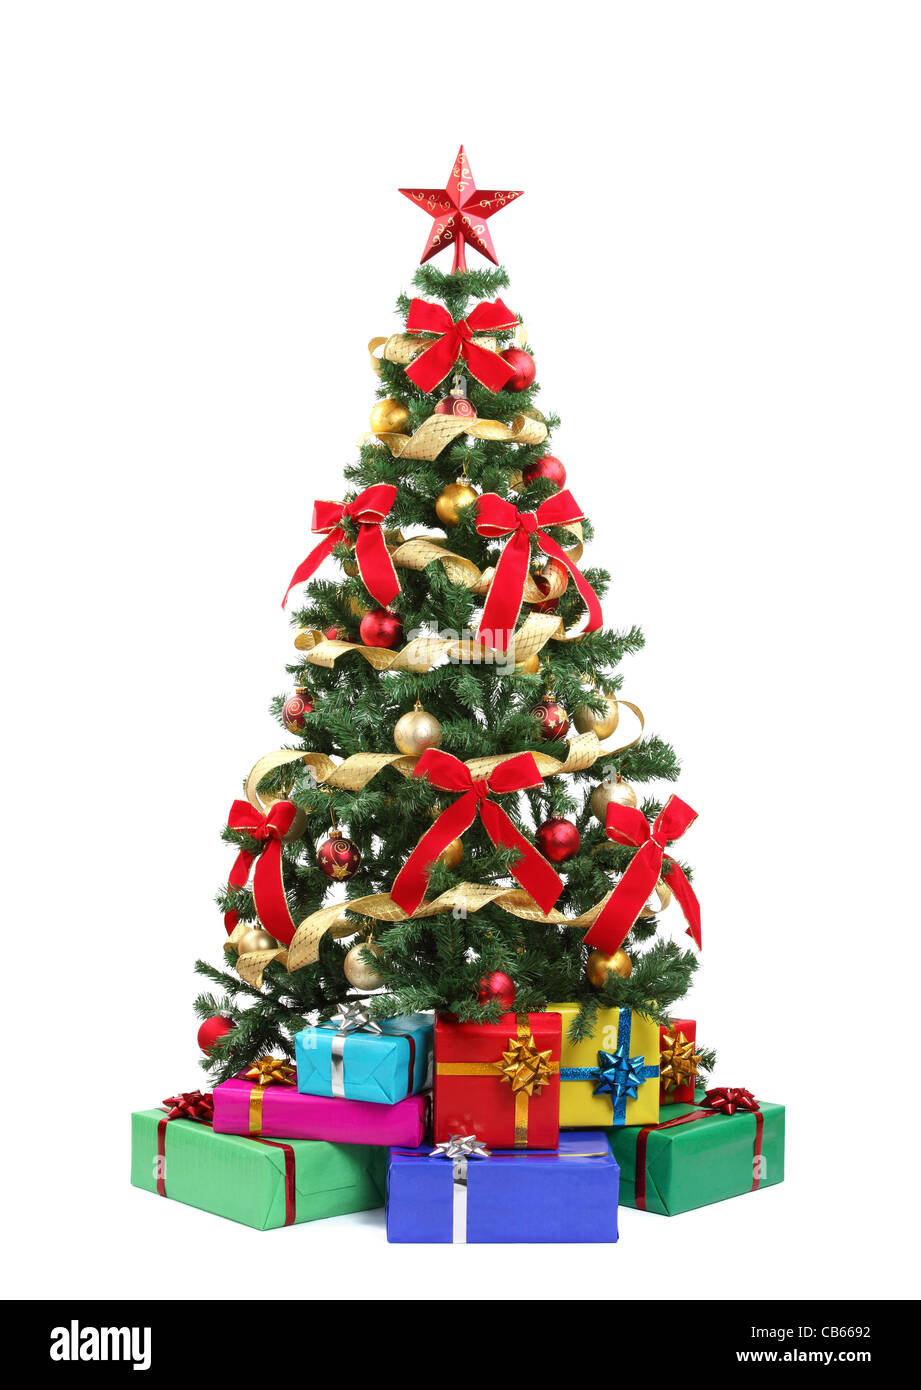 Christmas tree and gifts.Isolated on white. - Stock Image